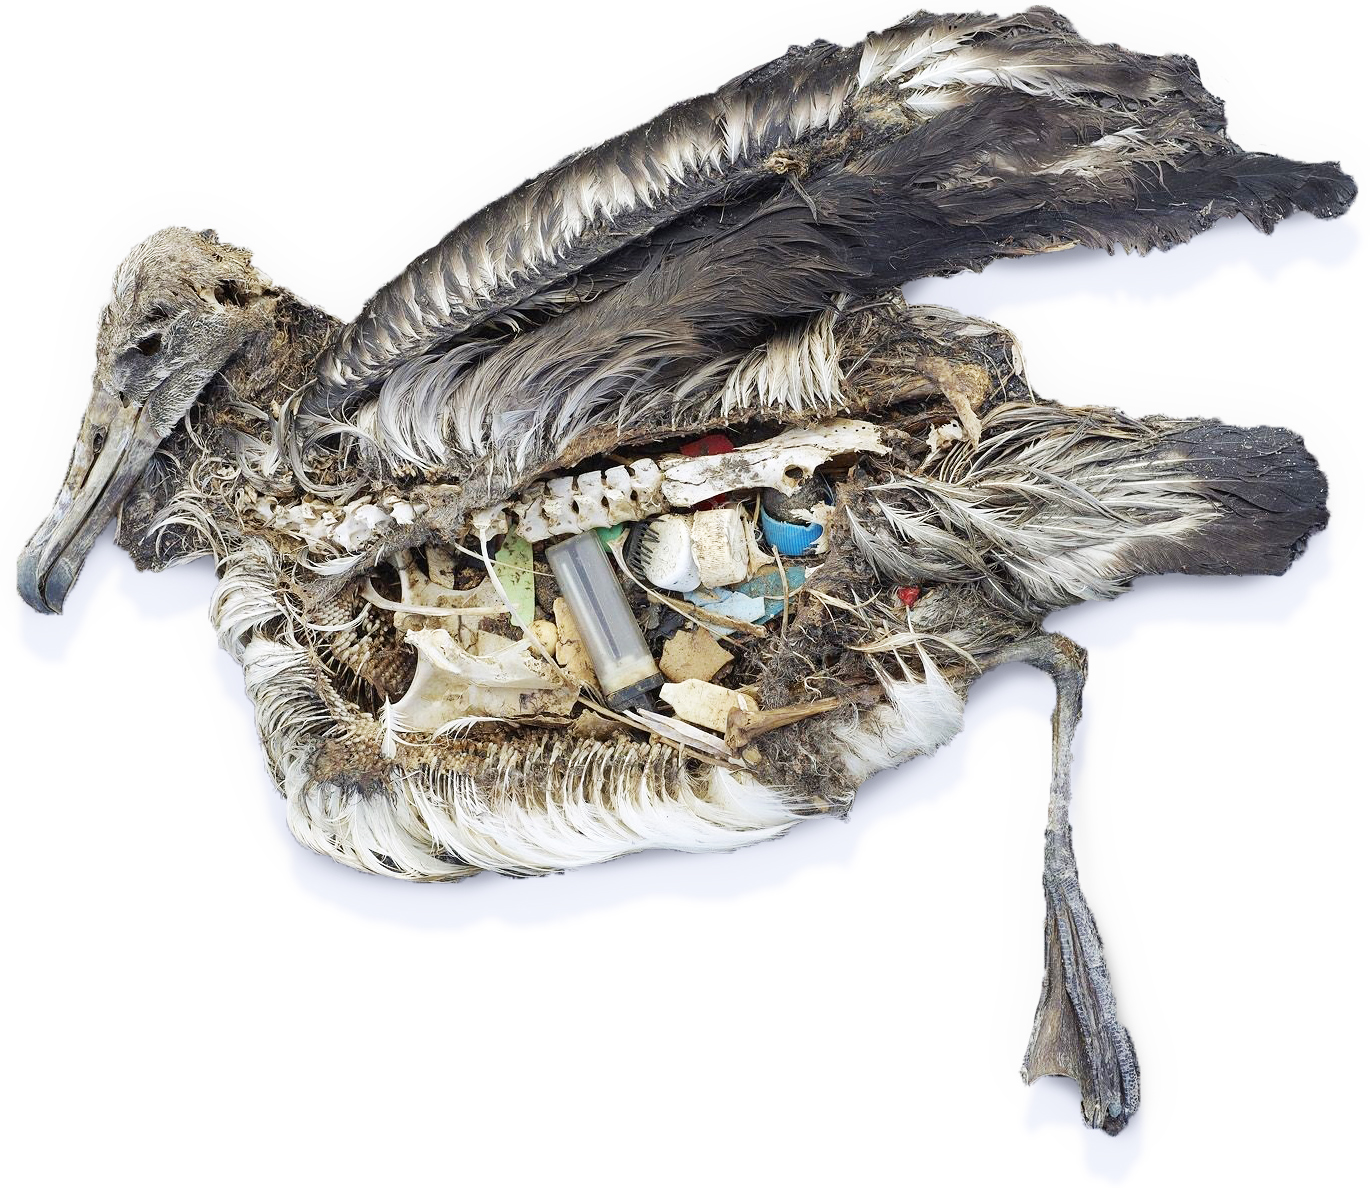 Sea Bird filled with plastic